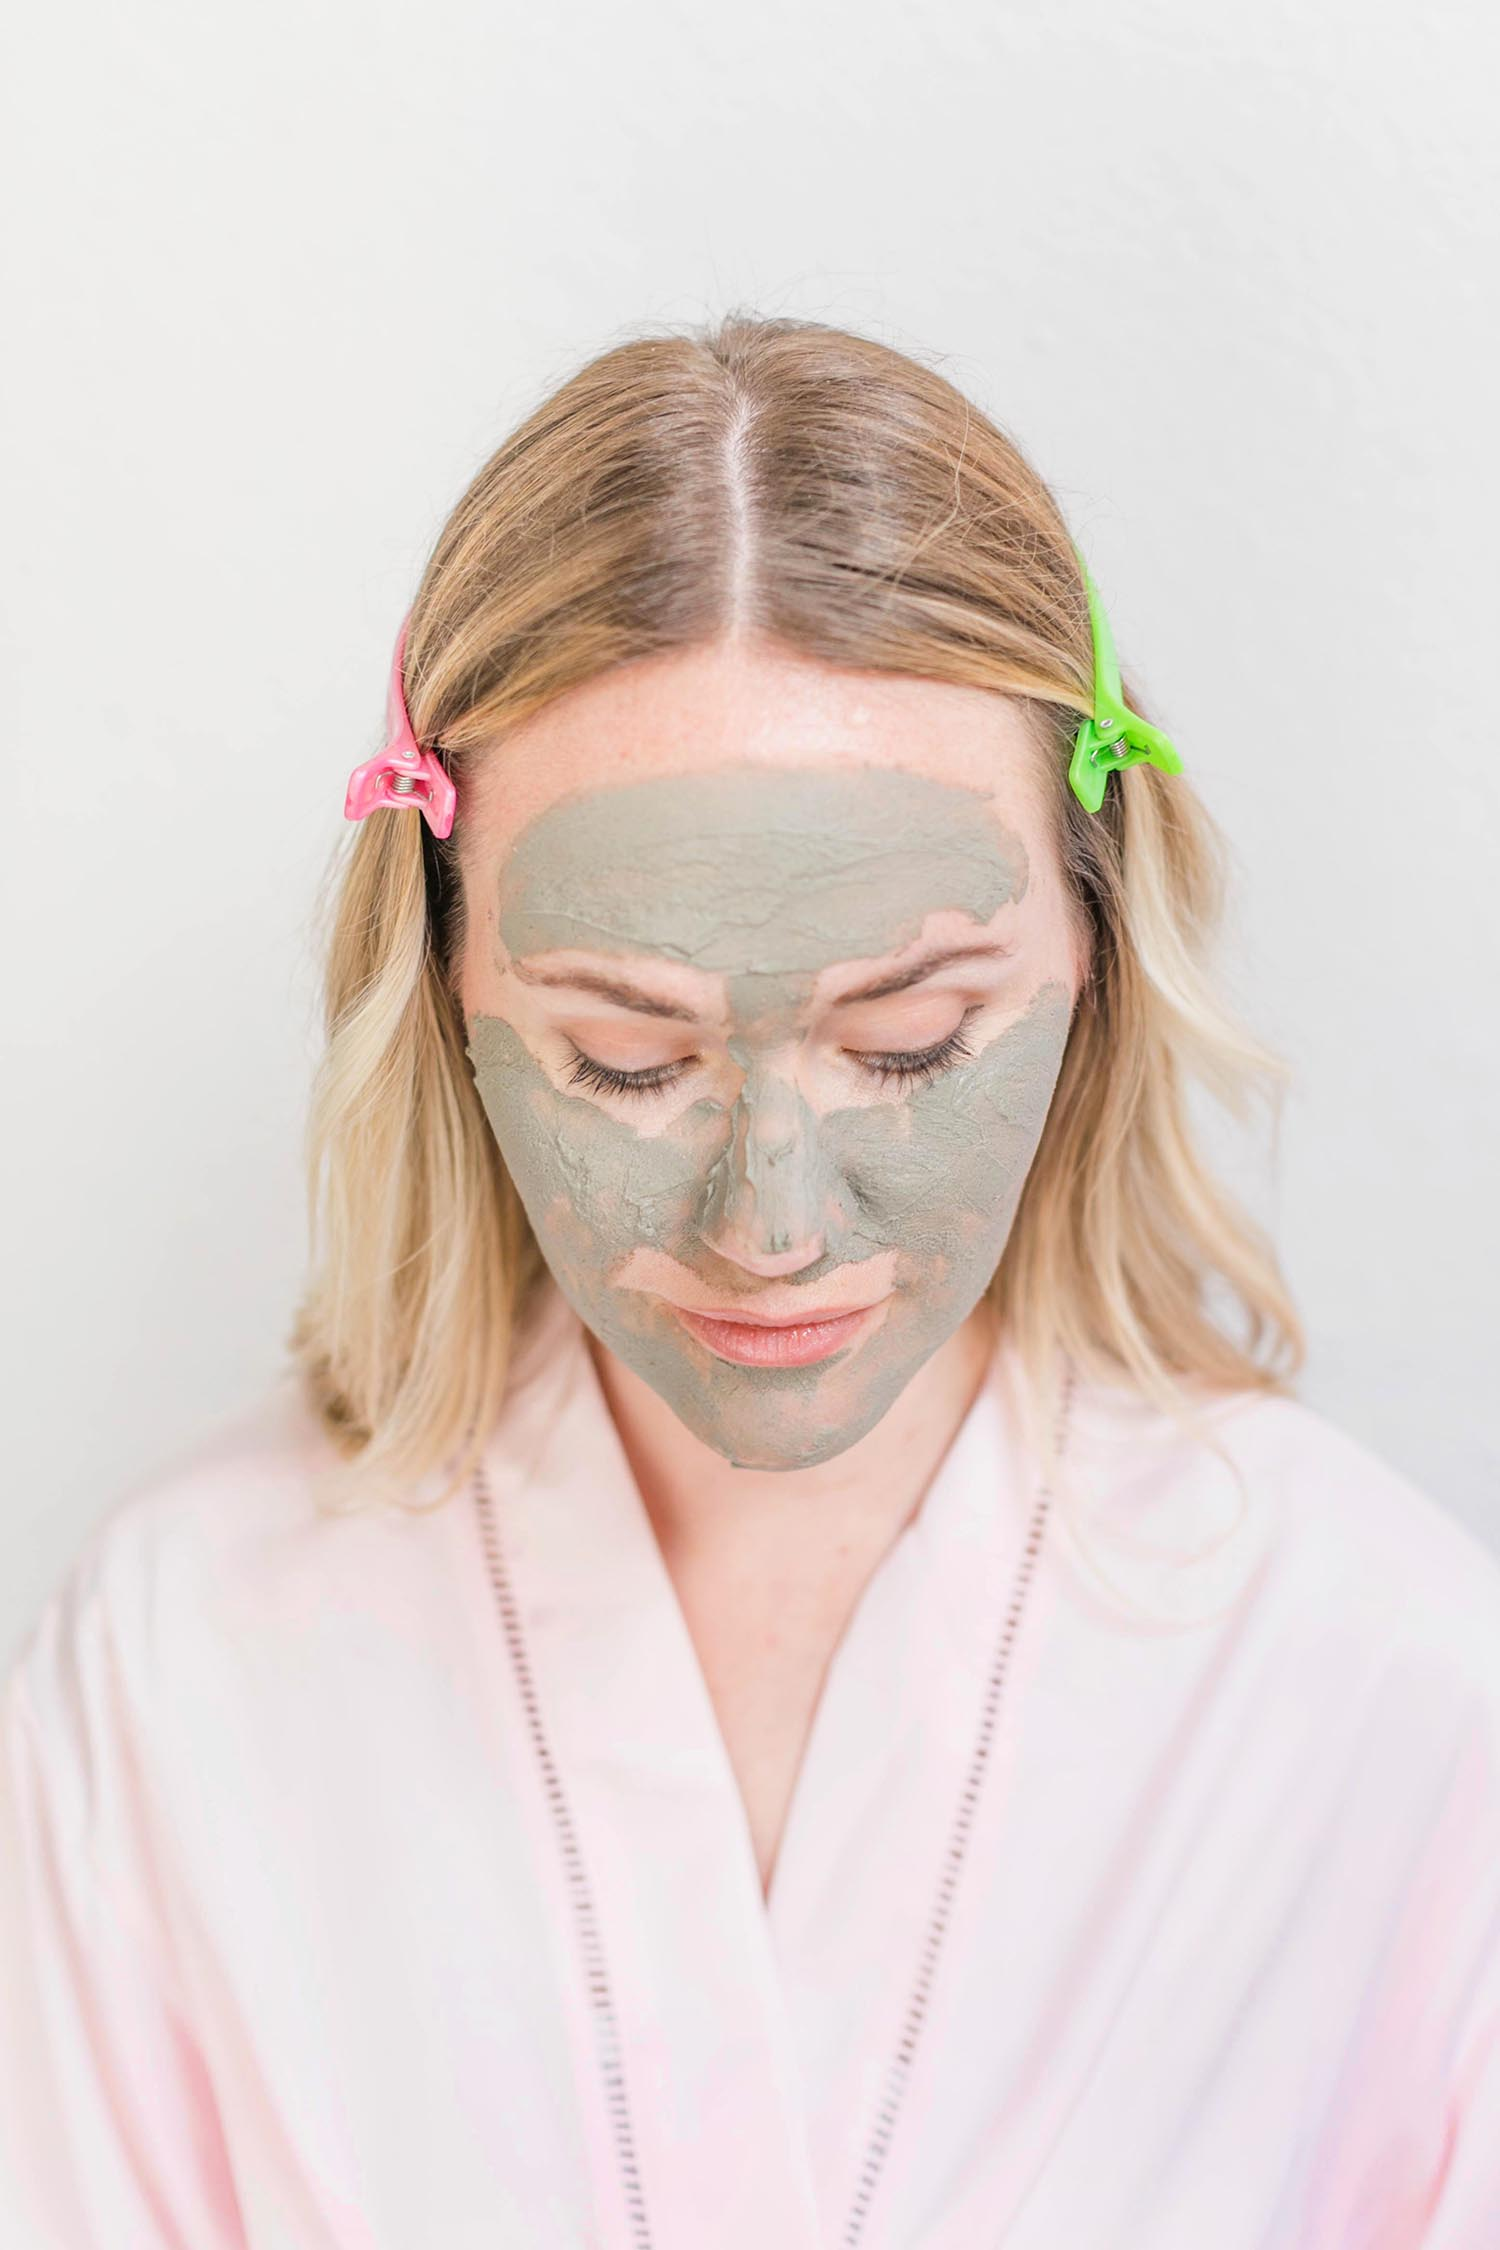 3 Uses for Bentonite Clay